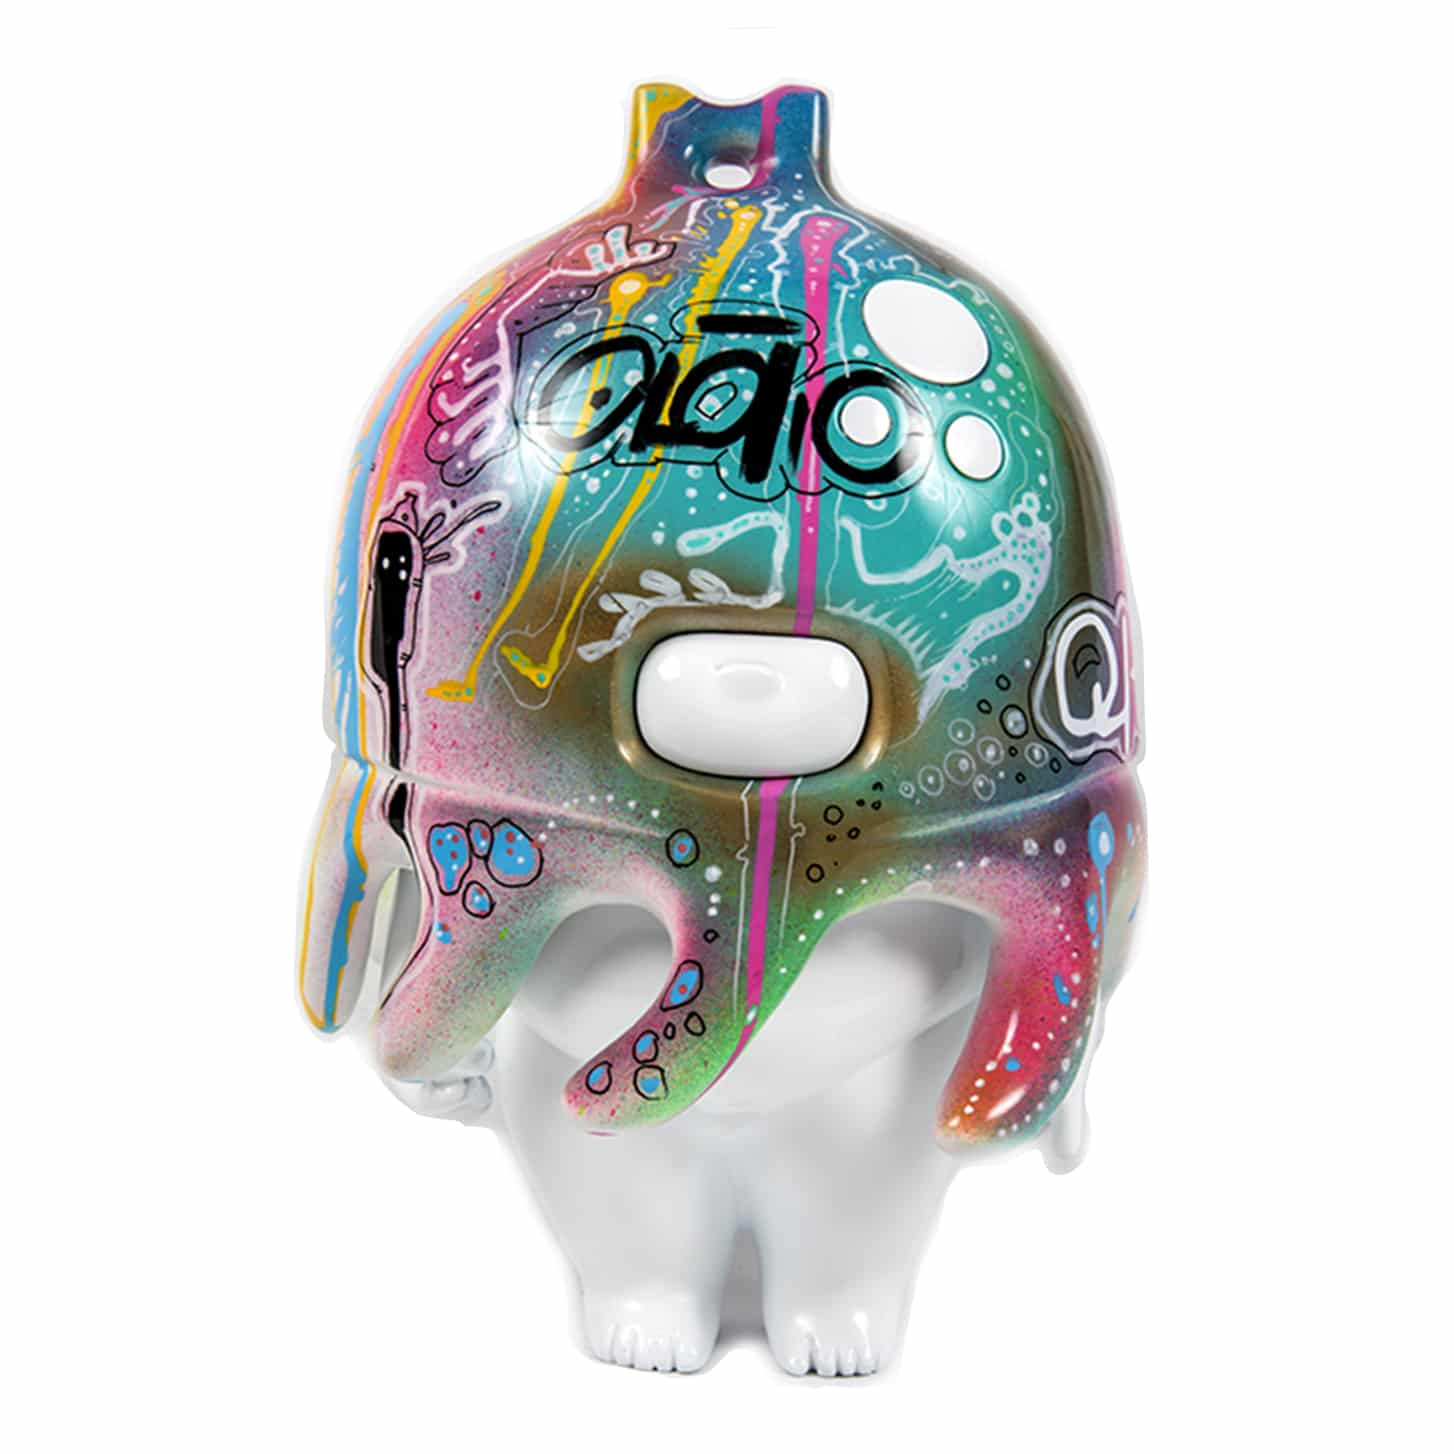 WAKO Octo Storyteller limited edition art toy